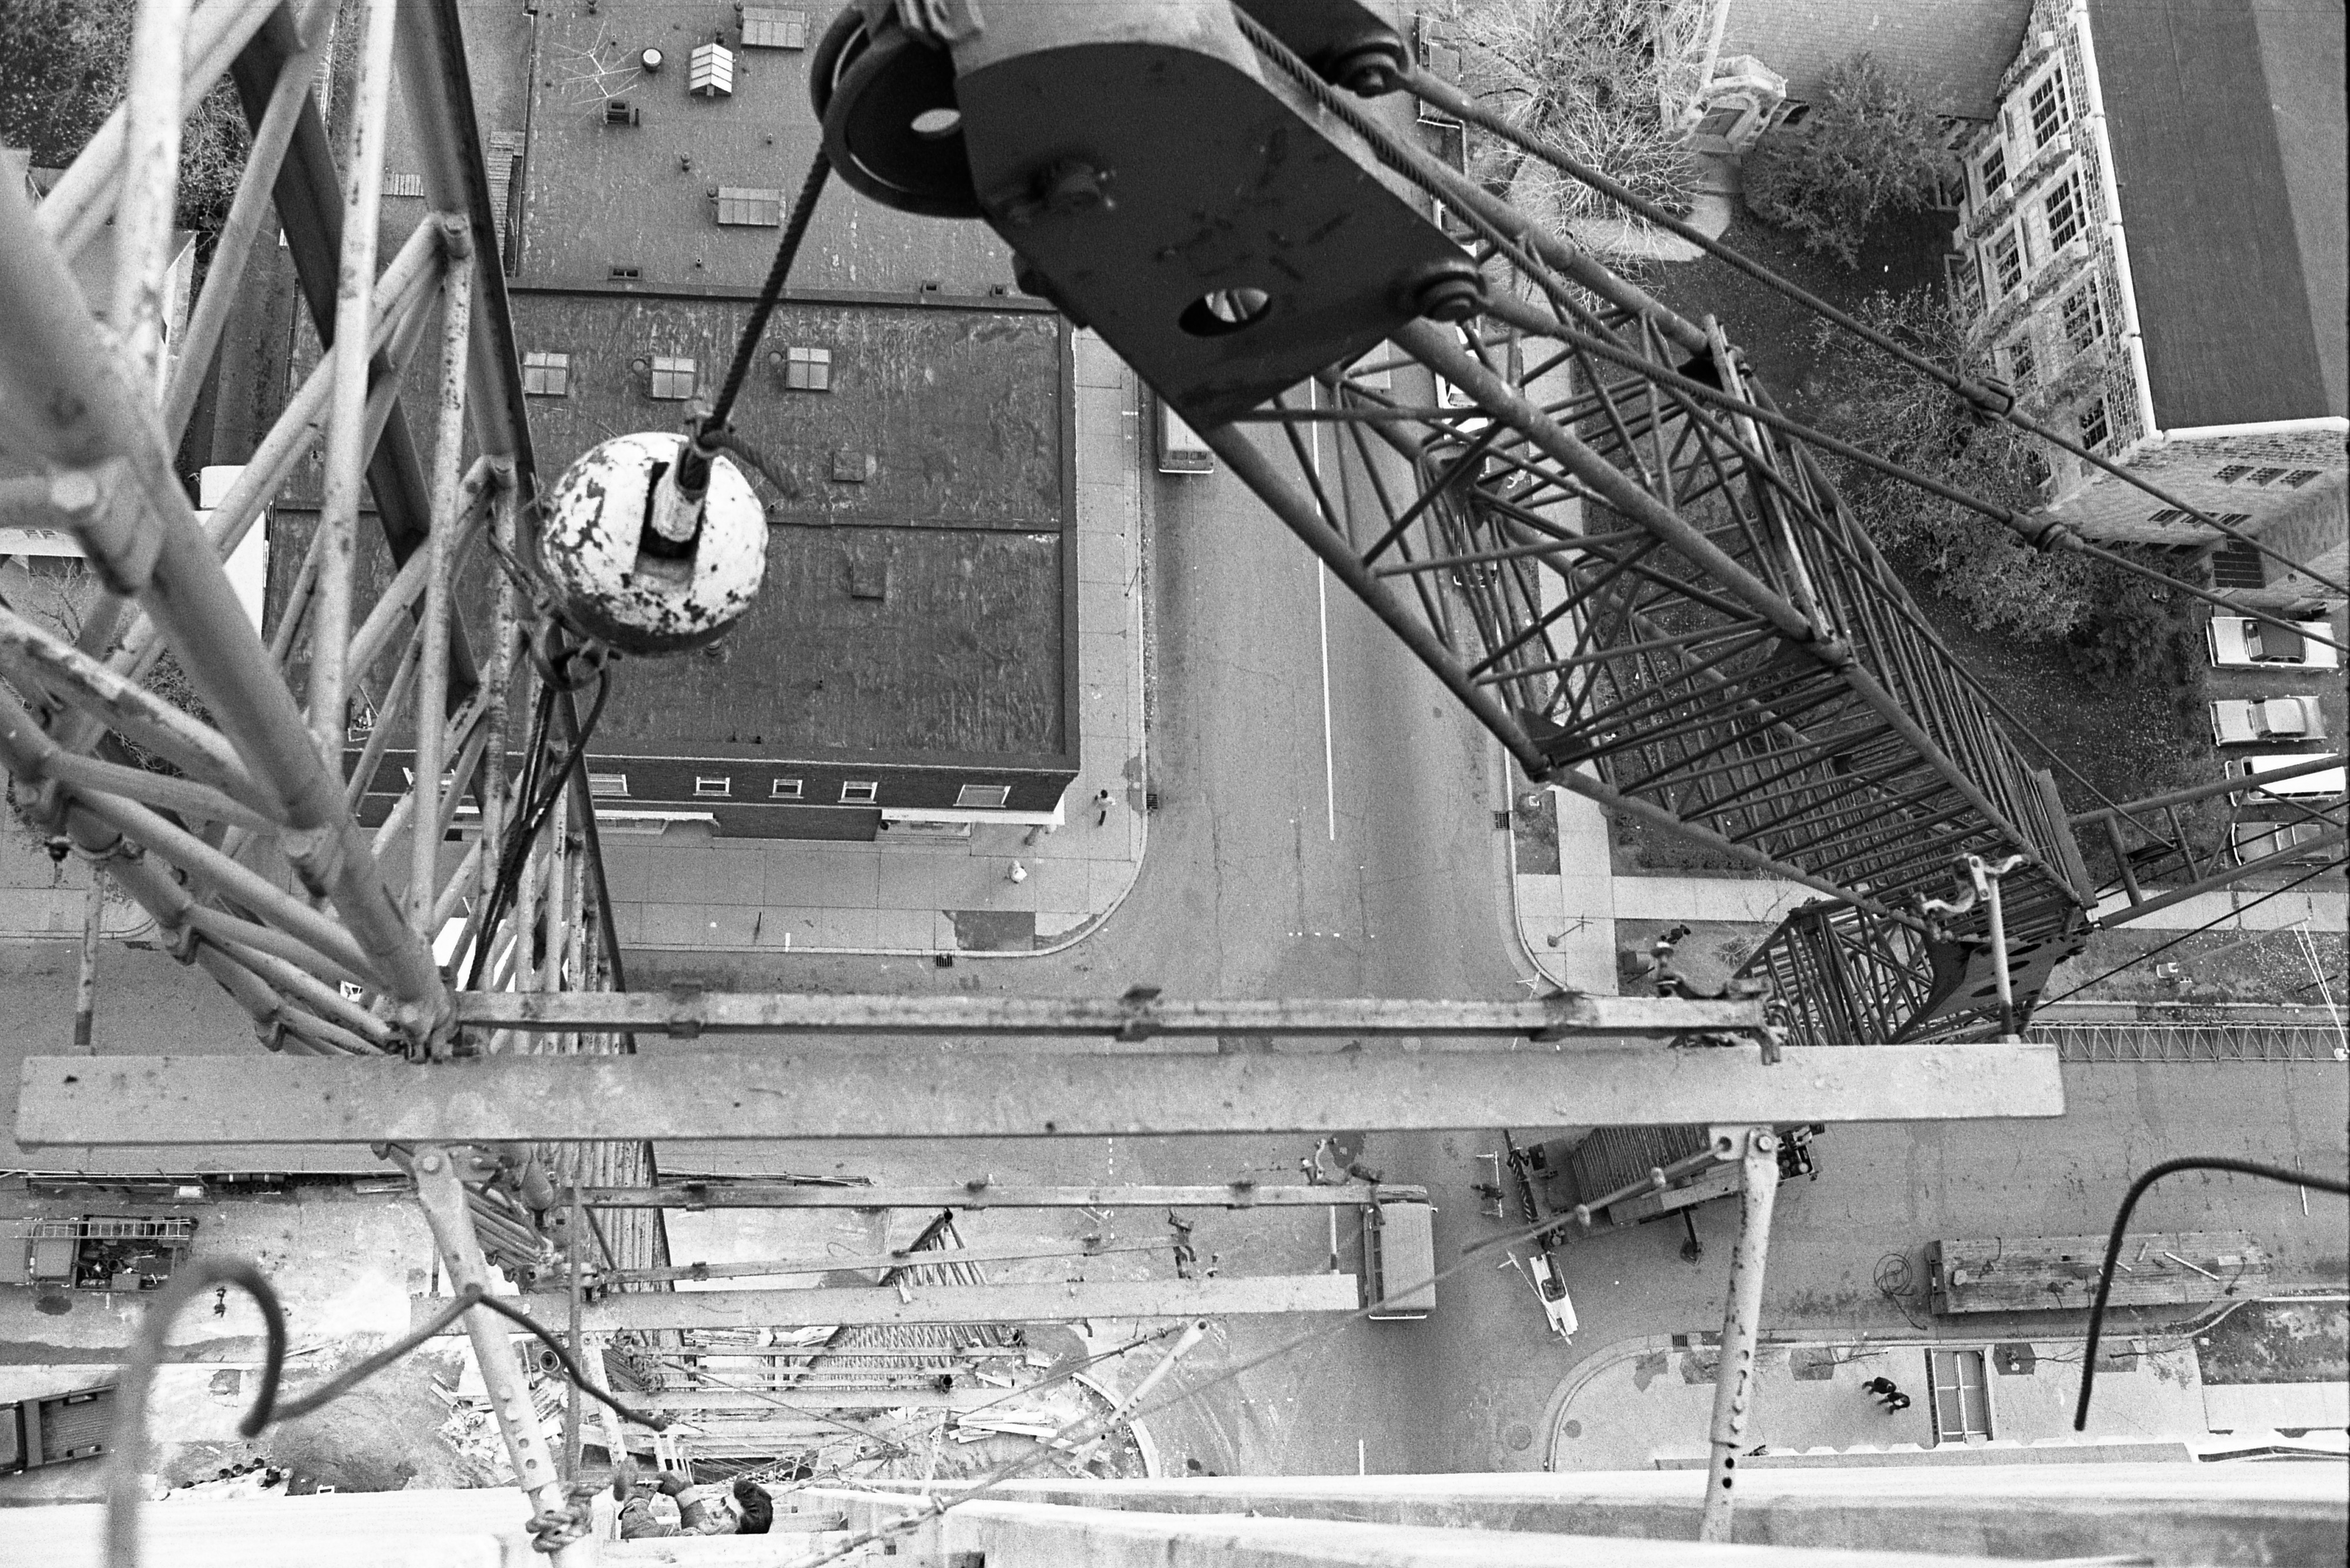 View From Tower Plaza Roof Of Construction Crane & William Street Running Vertically, November 9, 1968 image